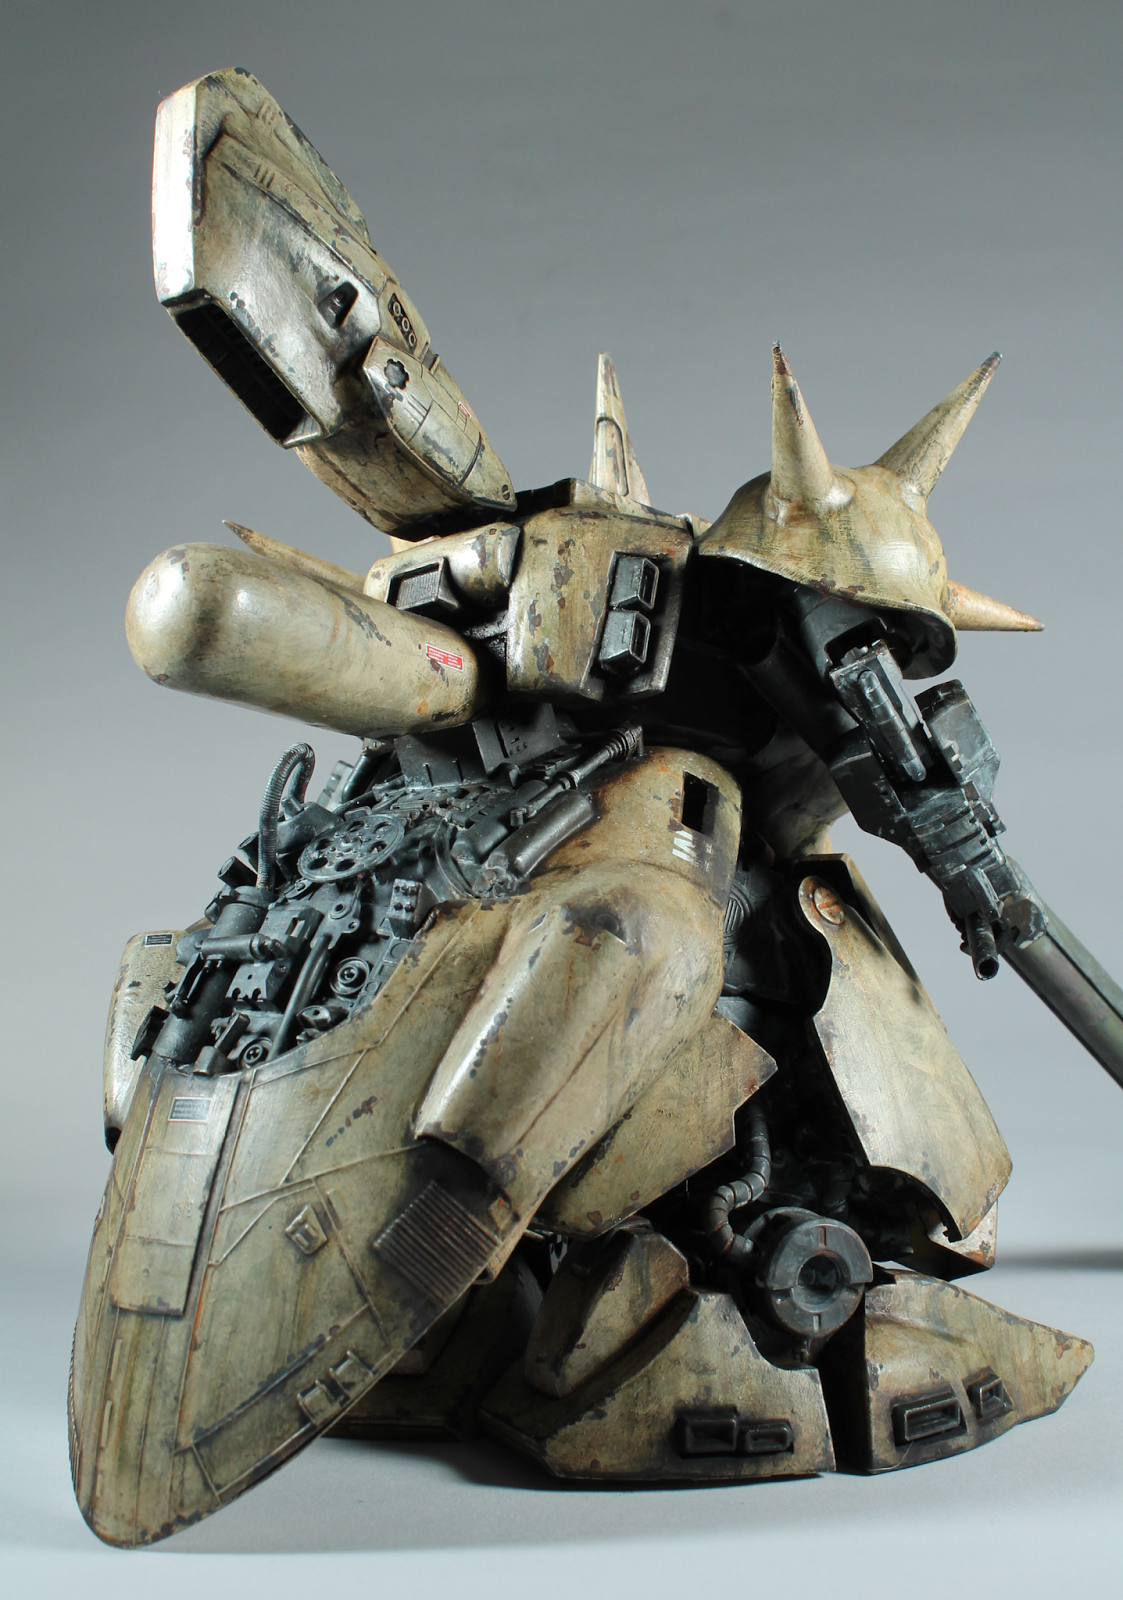 Rare Gundam Model Brought Back From The Dead